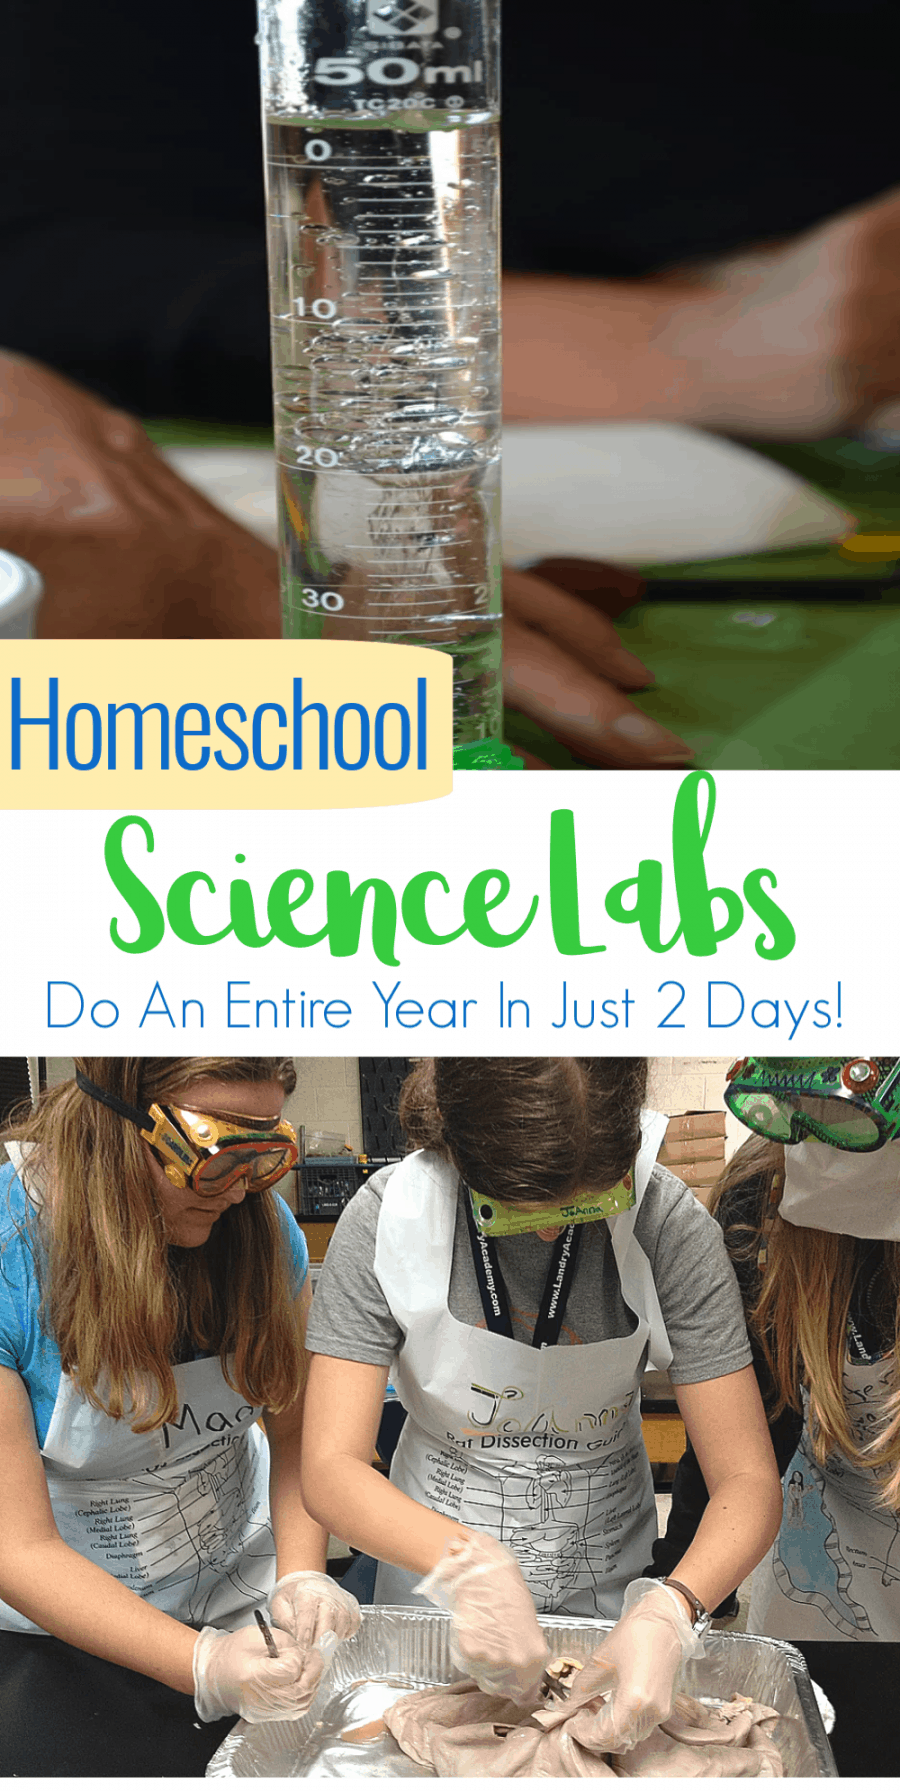 You Don't Have To Homeschool Alone! - College Prep Science Labs - Fill an entire years worth of science lab requirements in just 2 DAYS! (Classes throughout the US now filling.)